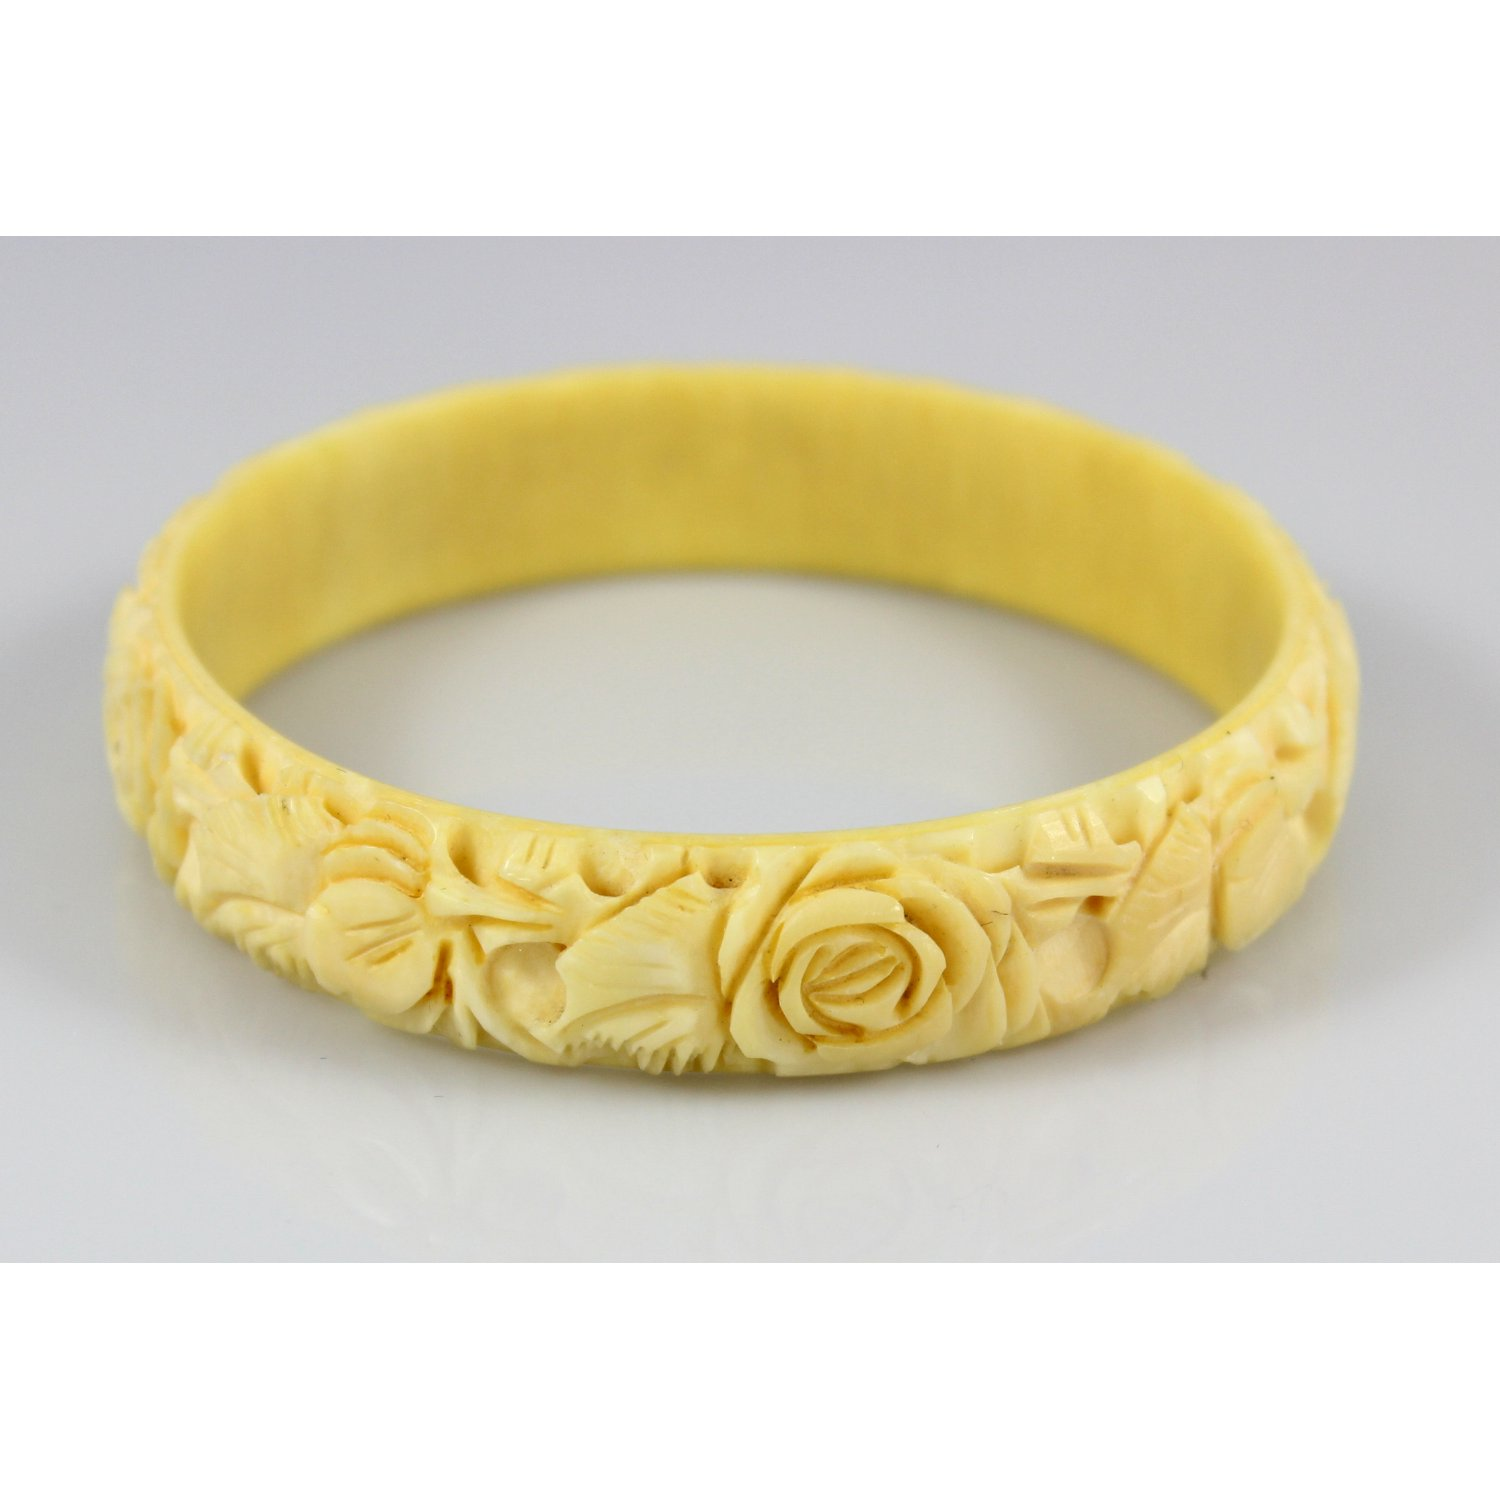 Mid-Century-Miriam-Haskell-Carved-Bangle-Bracelet_74421A.jpg